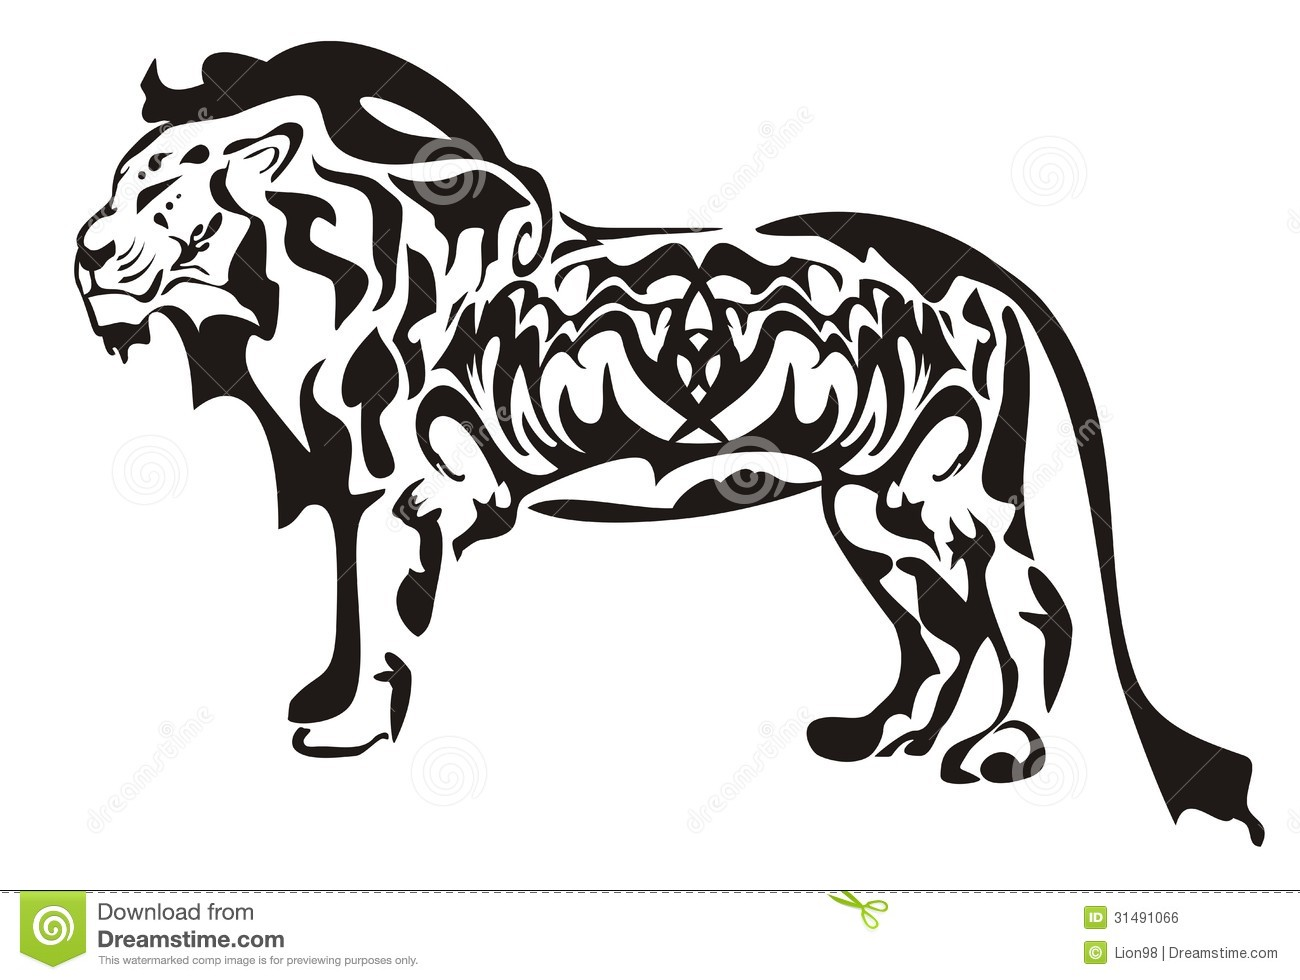 Tribal lion symbol ready for labels, stickers and T-shirt designs ...